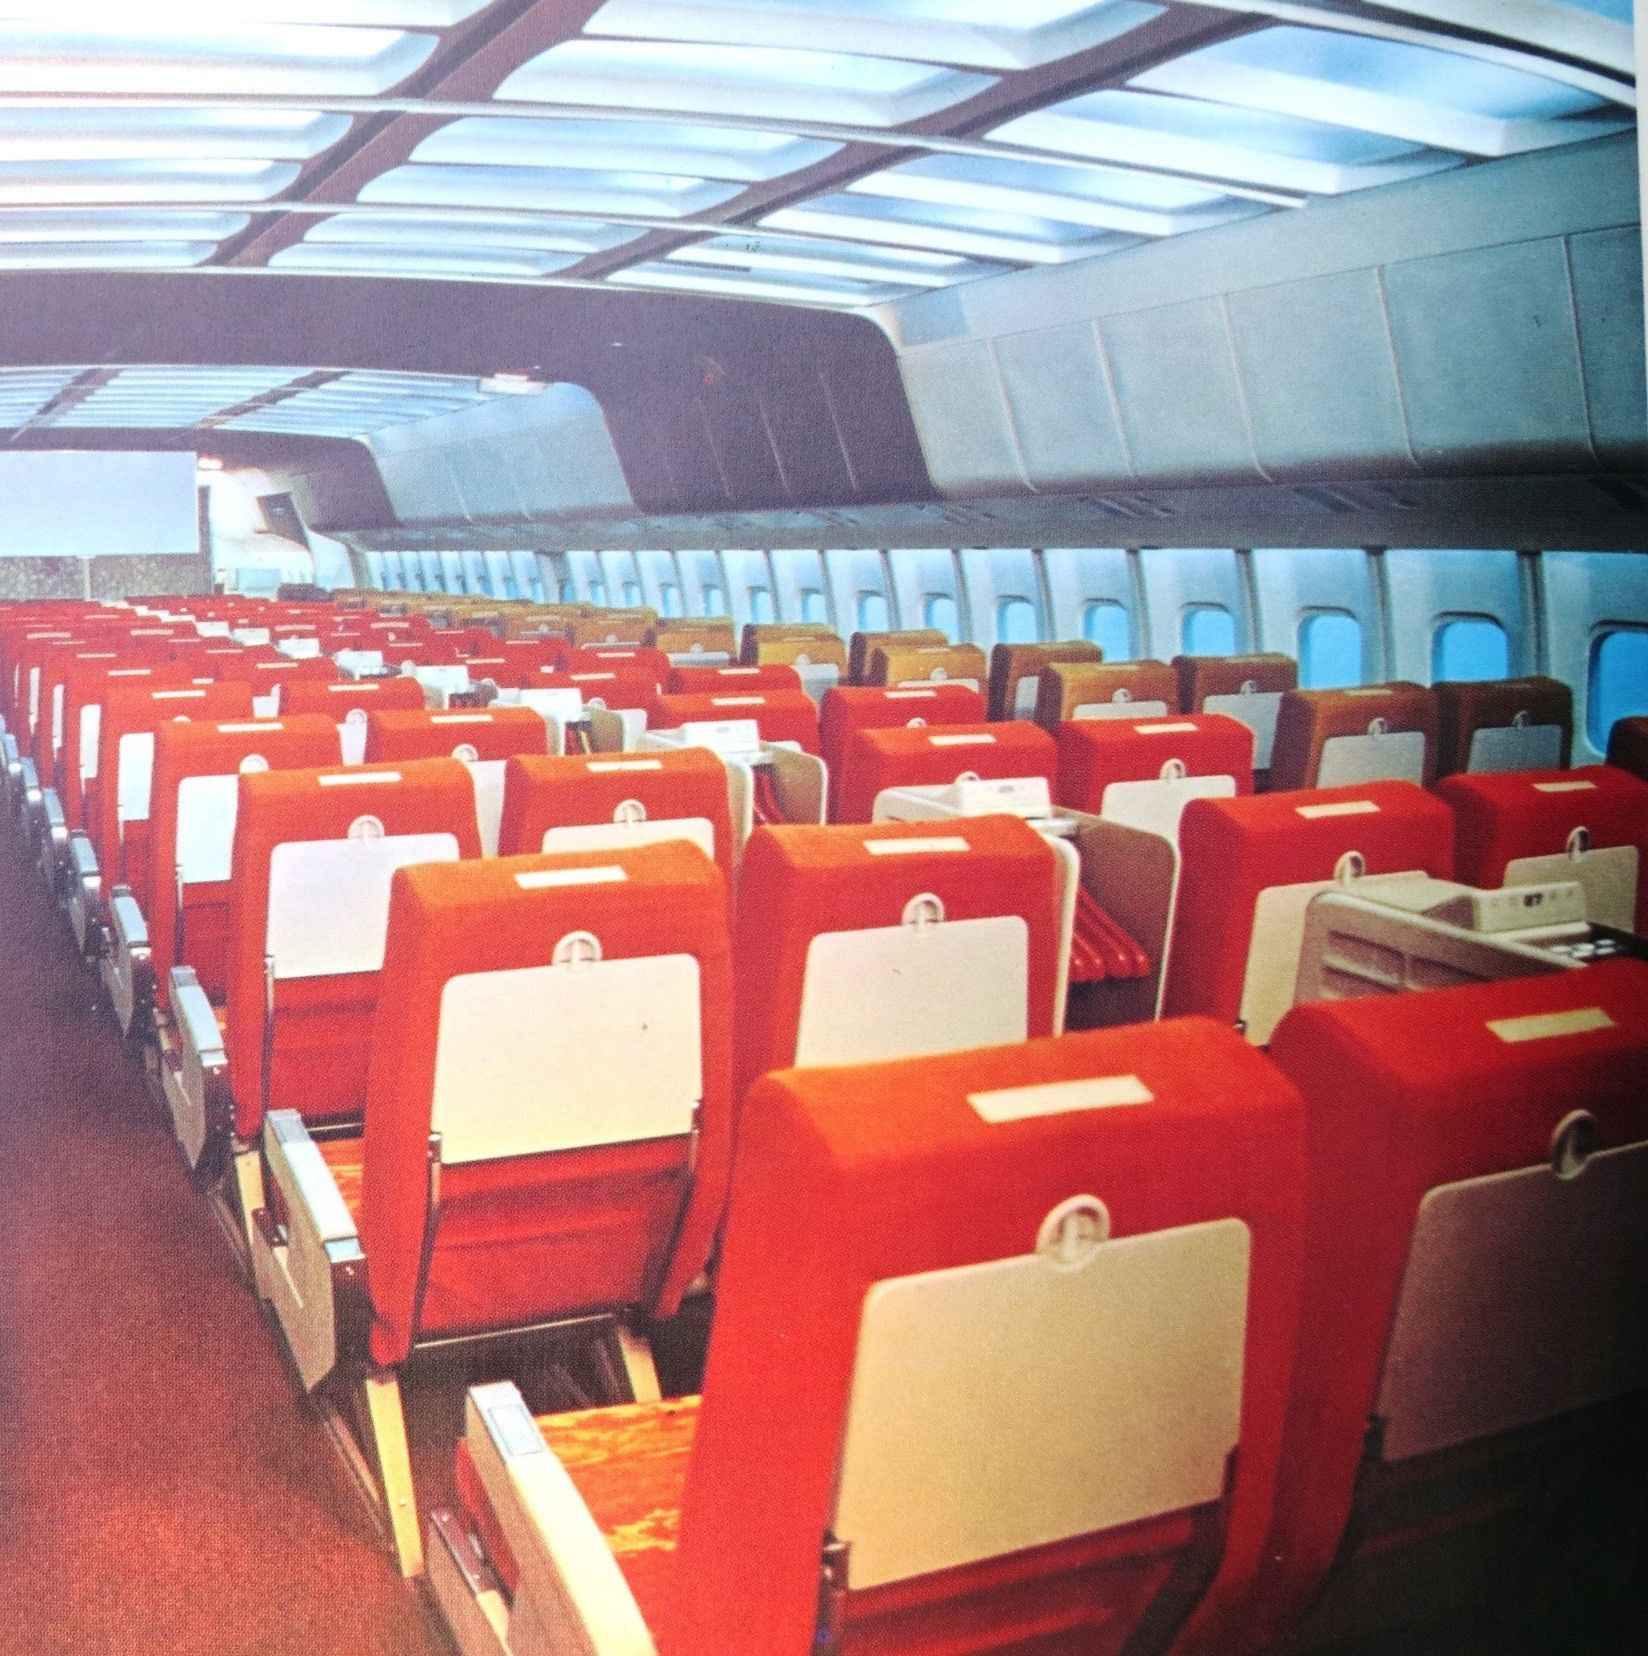 Cutaway of a pan am boeing 377 stratocruiser image from chris sloan - Lockheed Tristar Interior